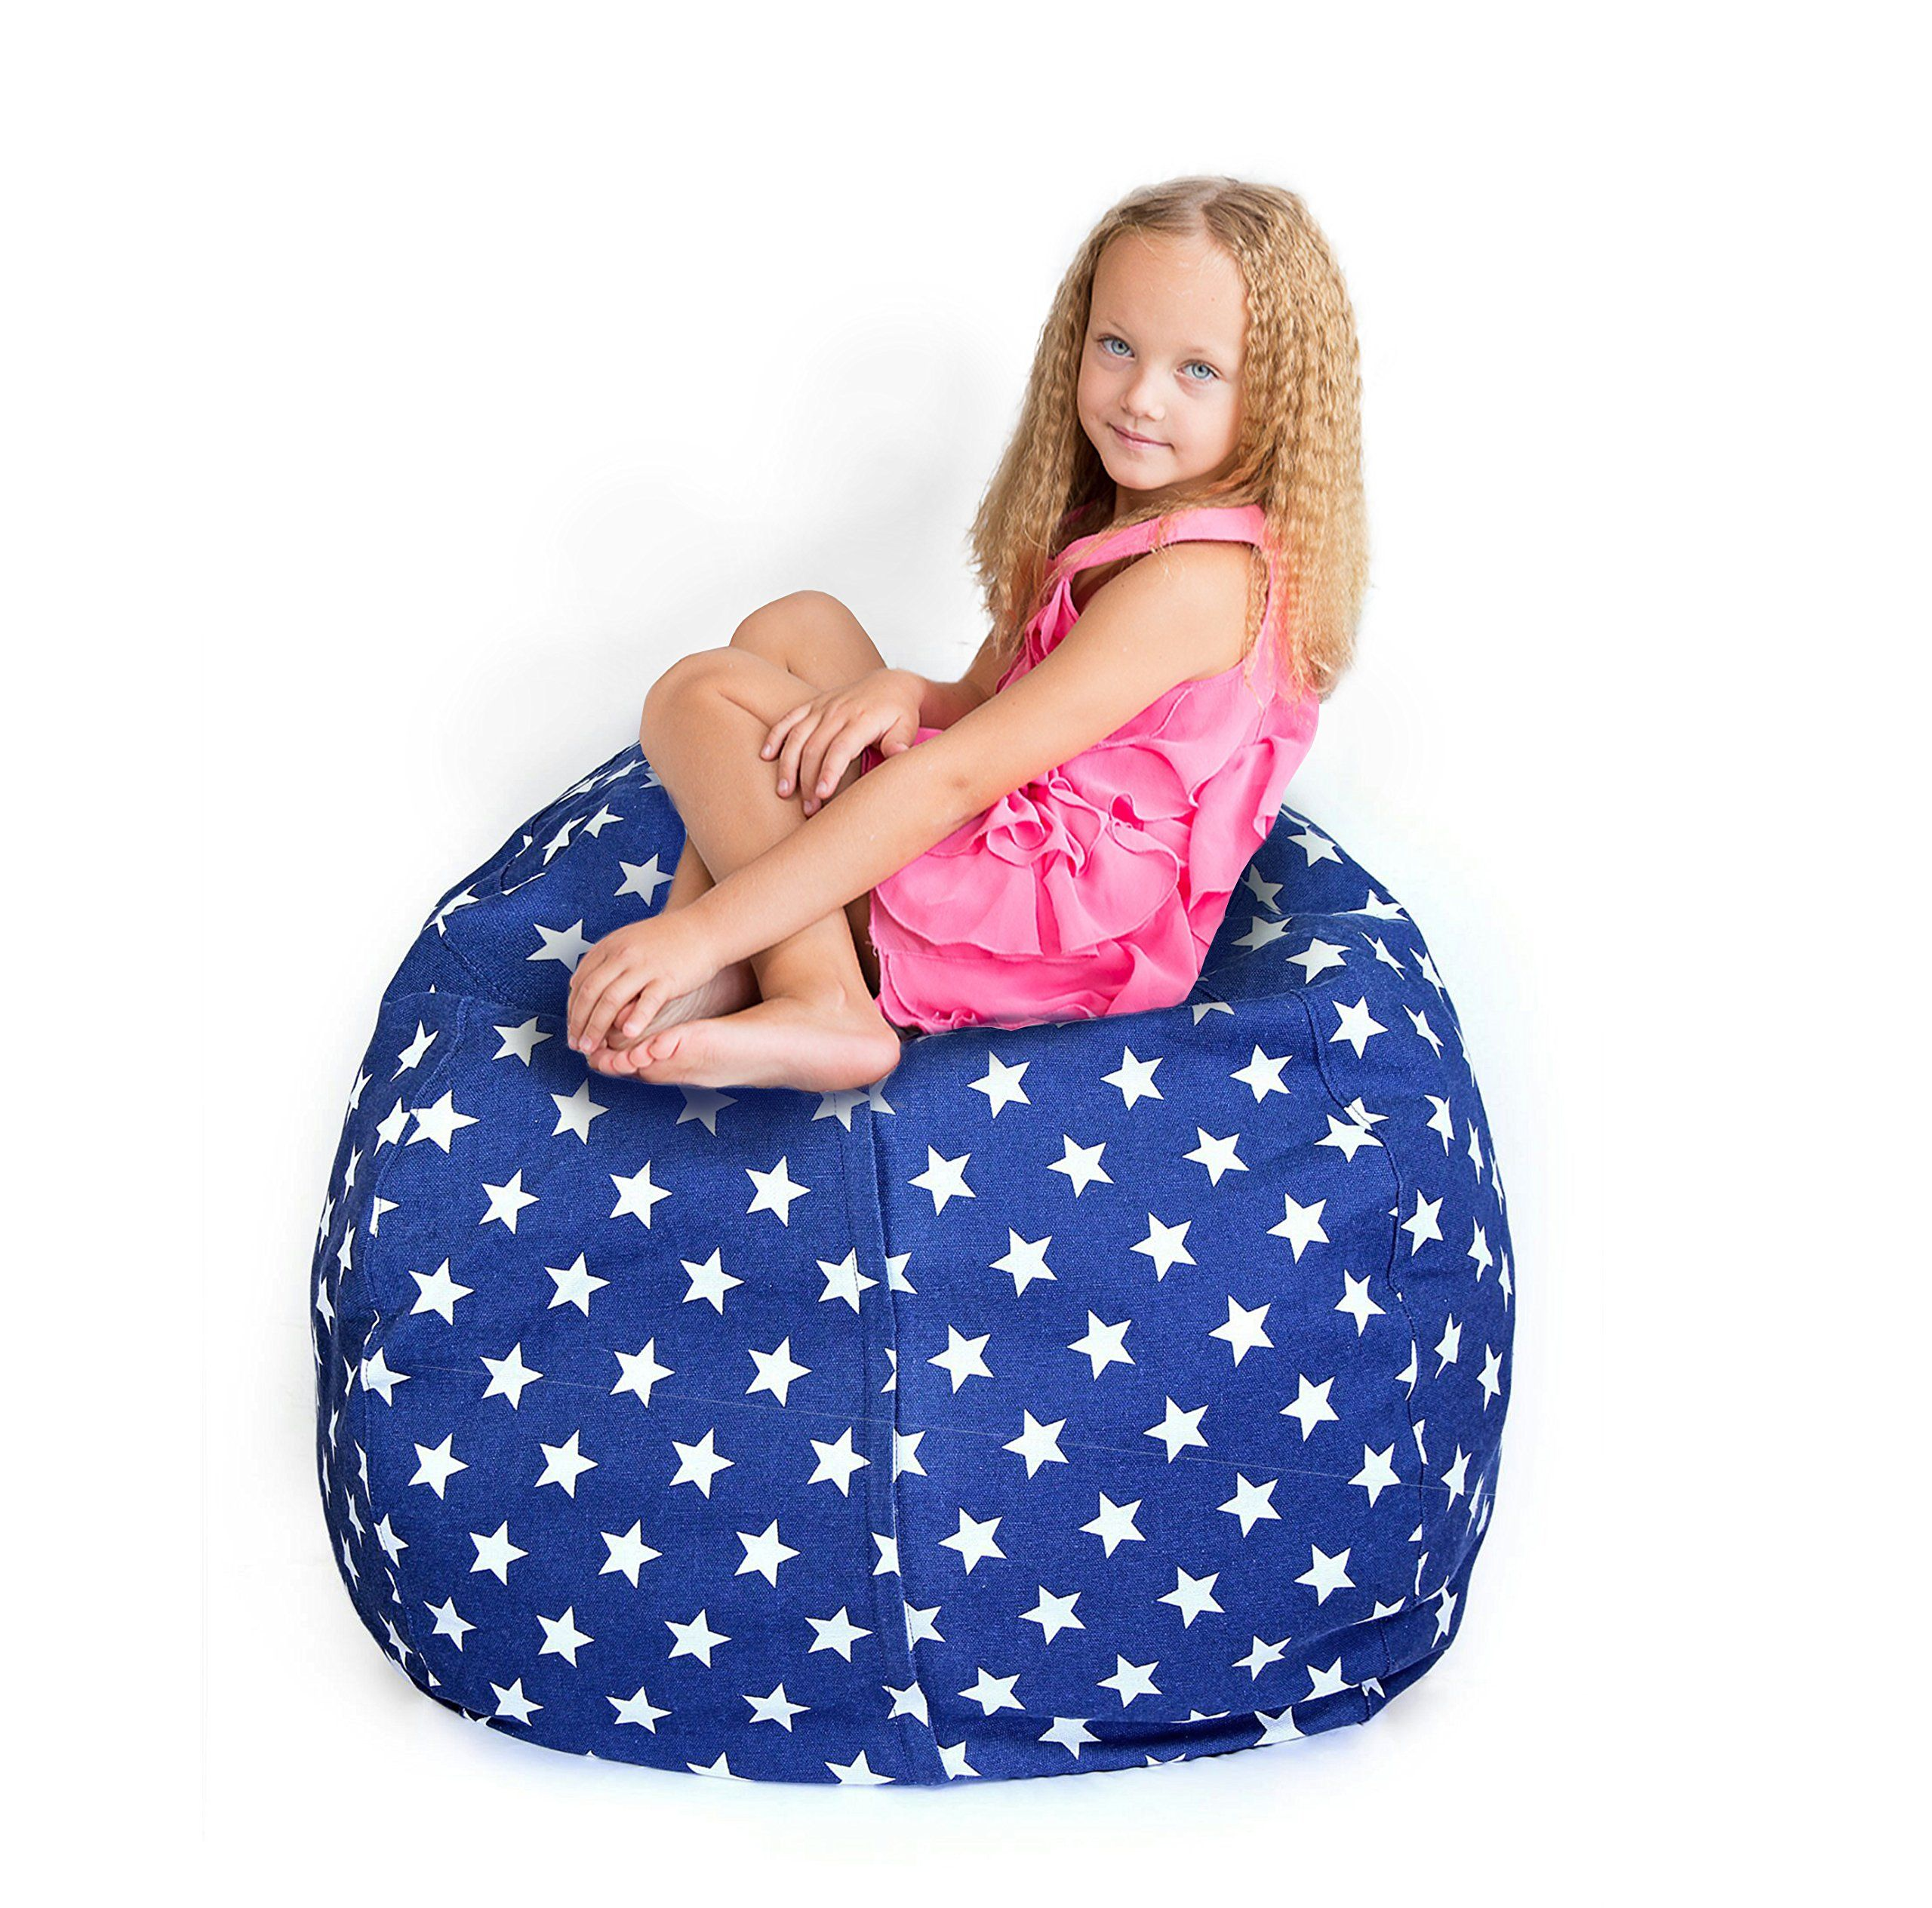 Amazing Extra Big Chair Bean Bag   Storage For Stuffed  Animal/Blankets/Towels/